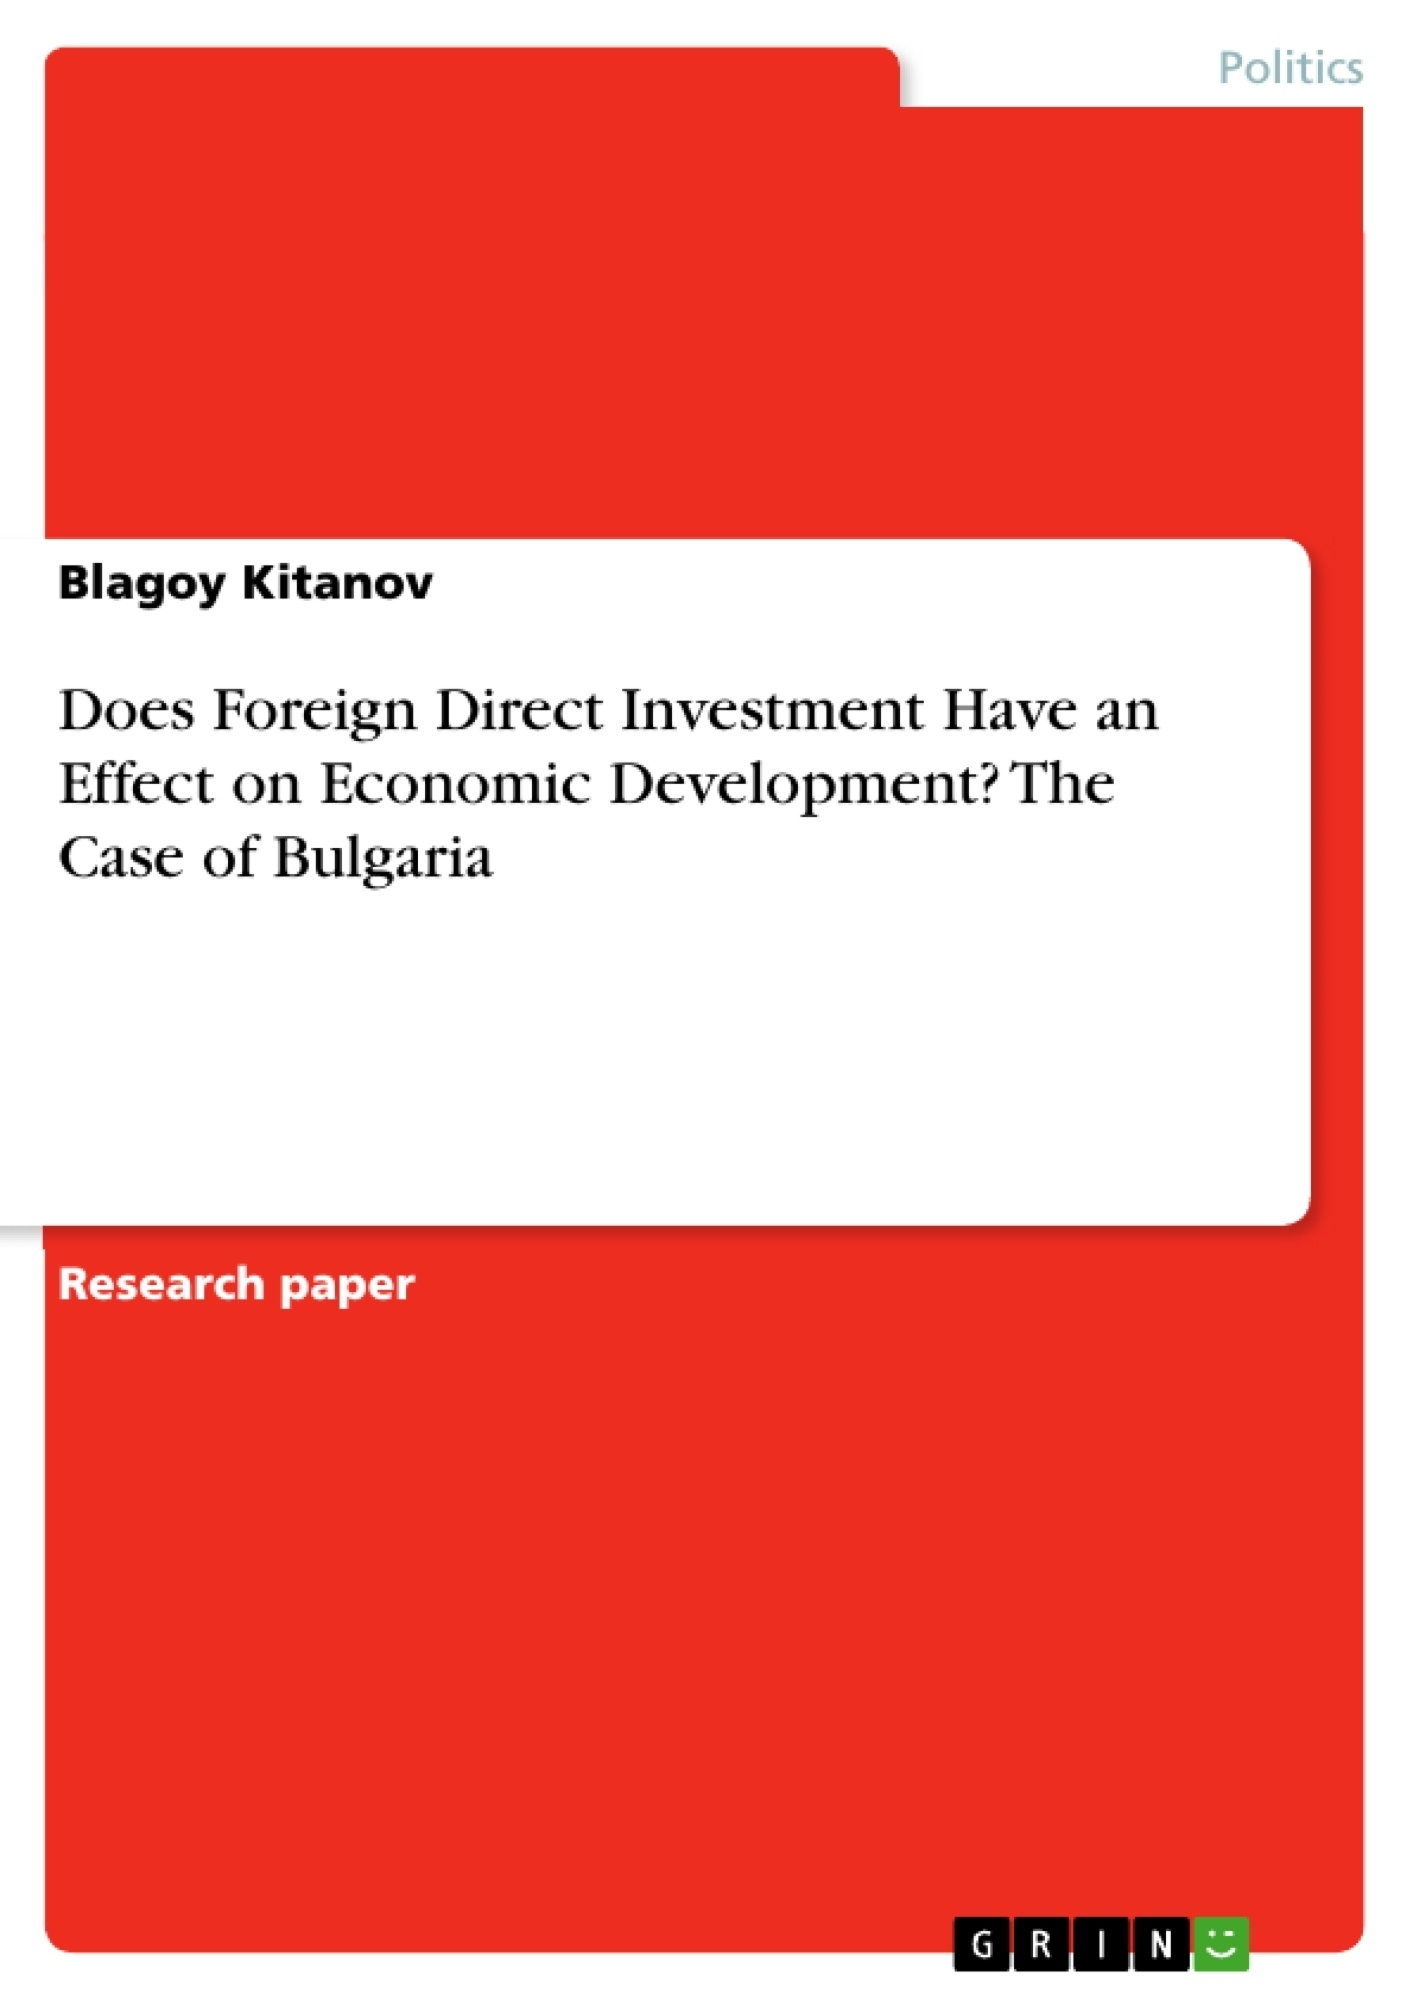 Title: Does Foreign Direct Investment Have an Effect on Economic Development? The Case of Bulgaria